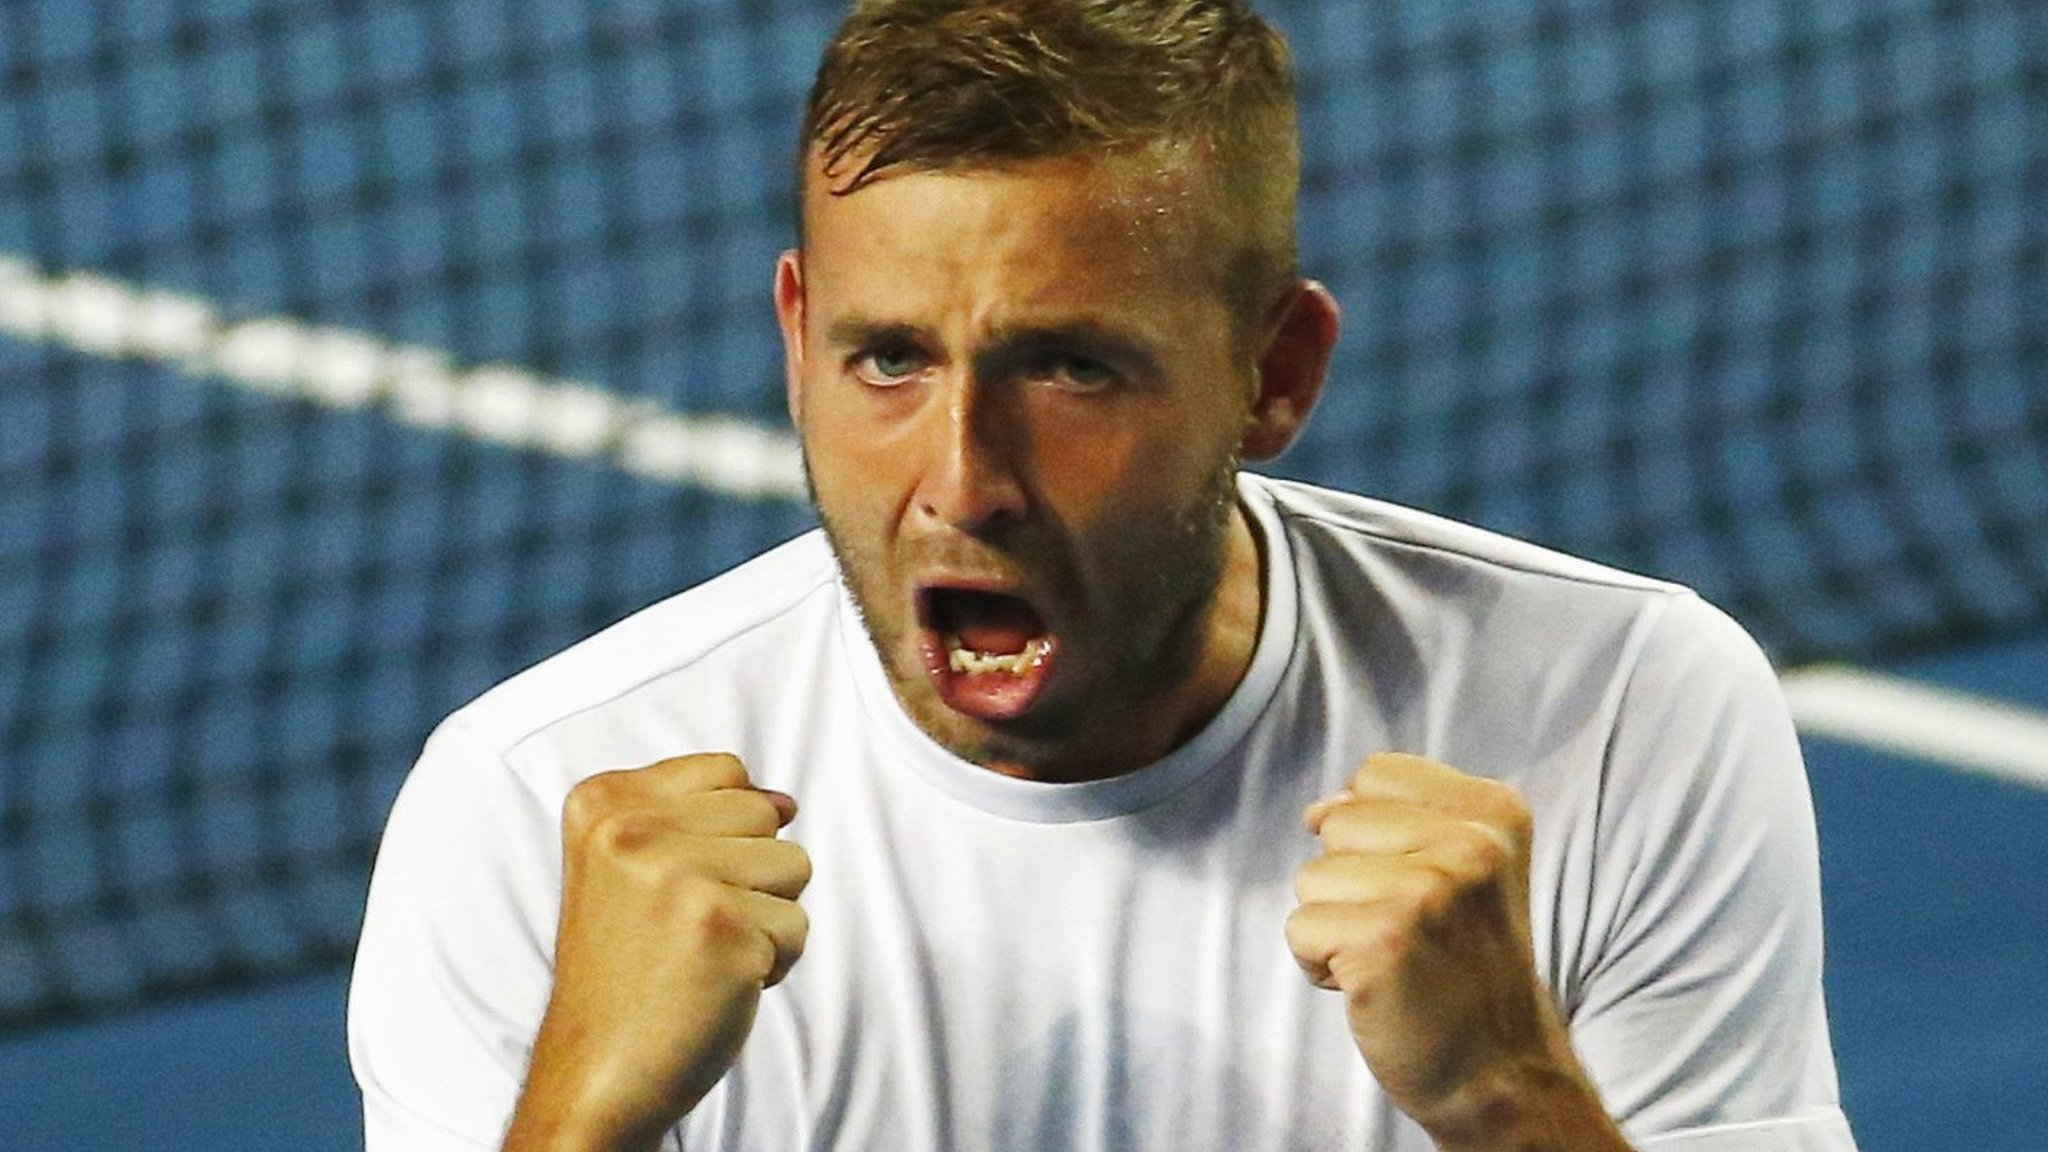 Dan Evans: Britain's latest tennis star snubbed by Kevin Pietersen